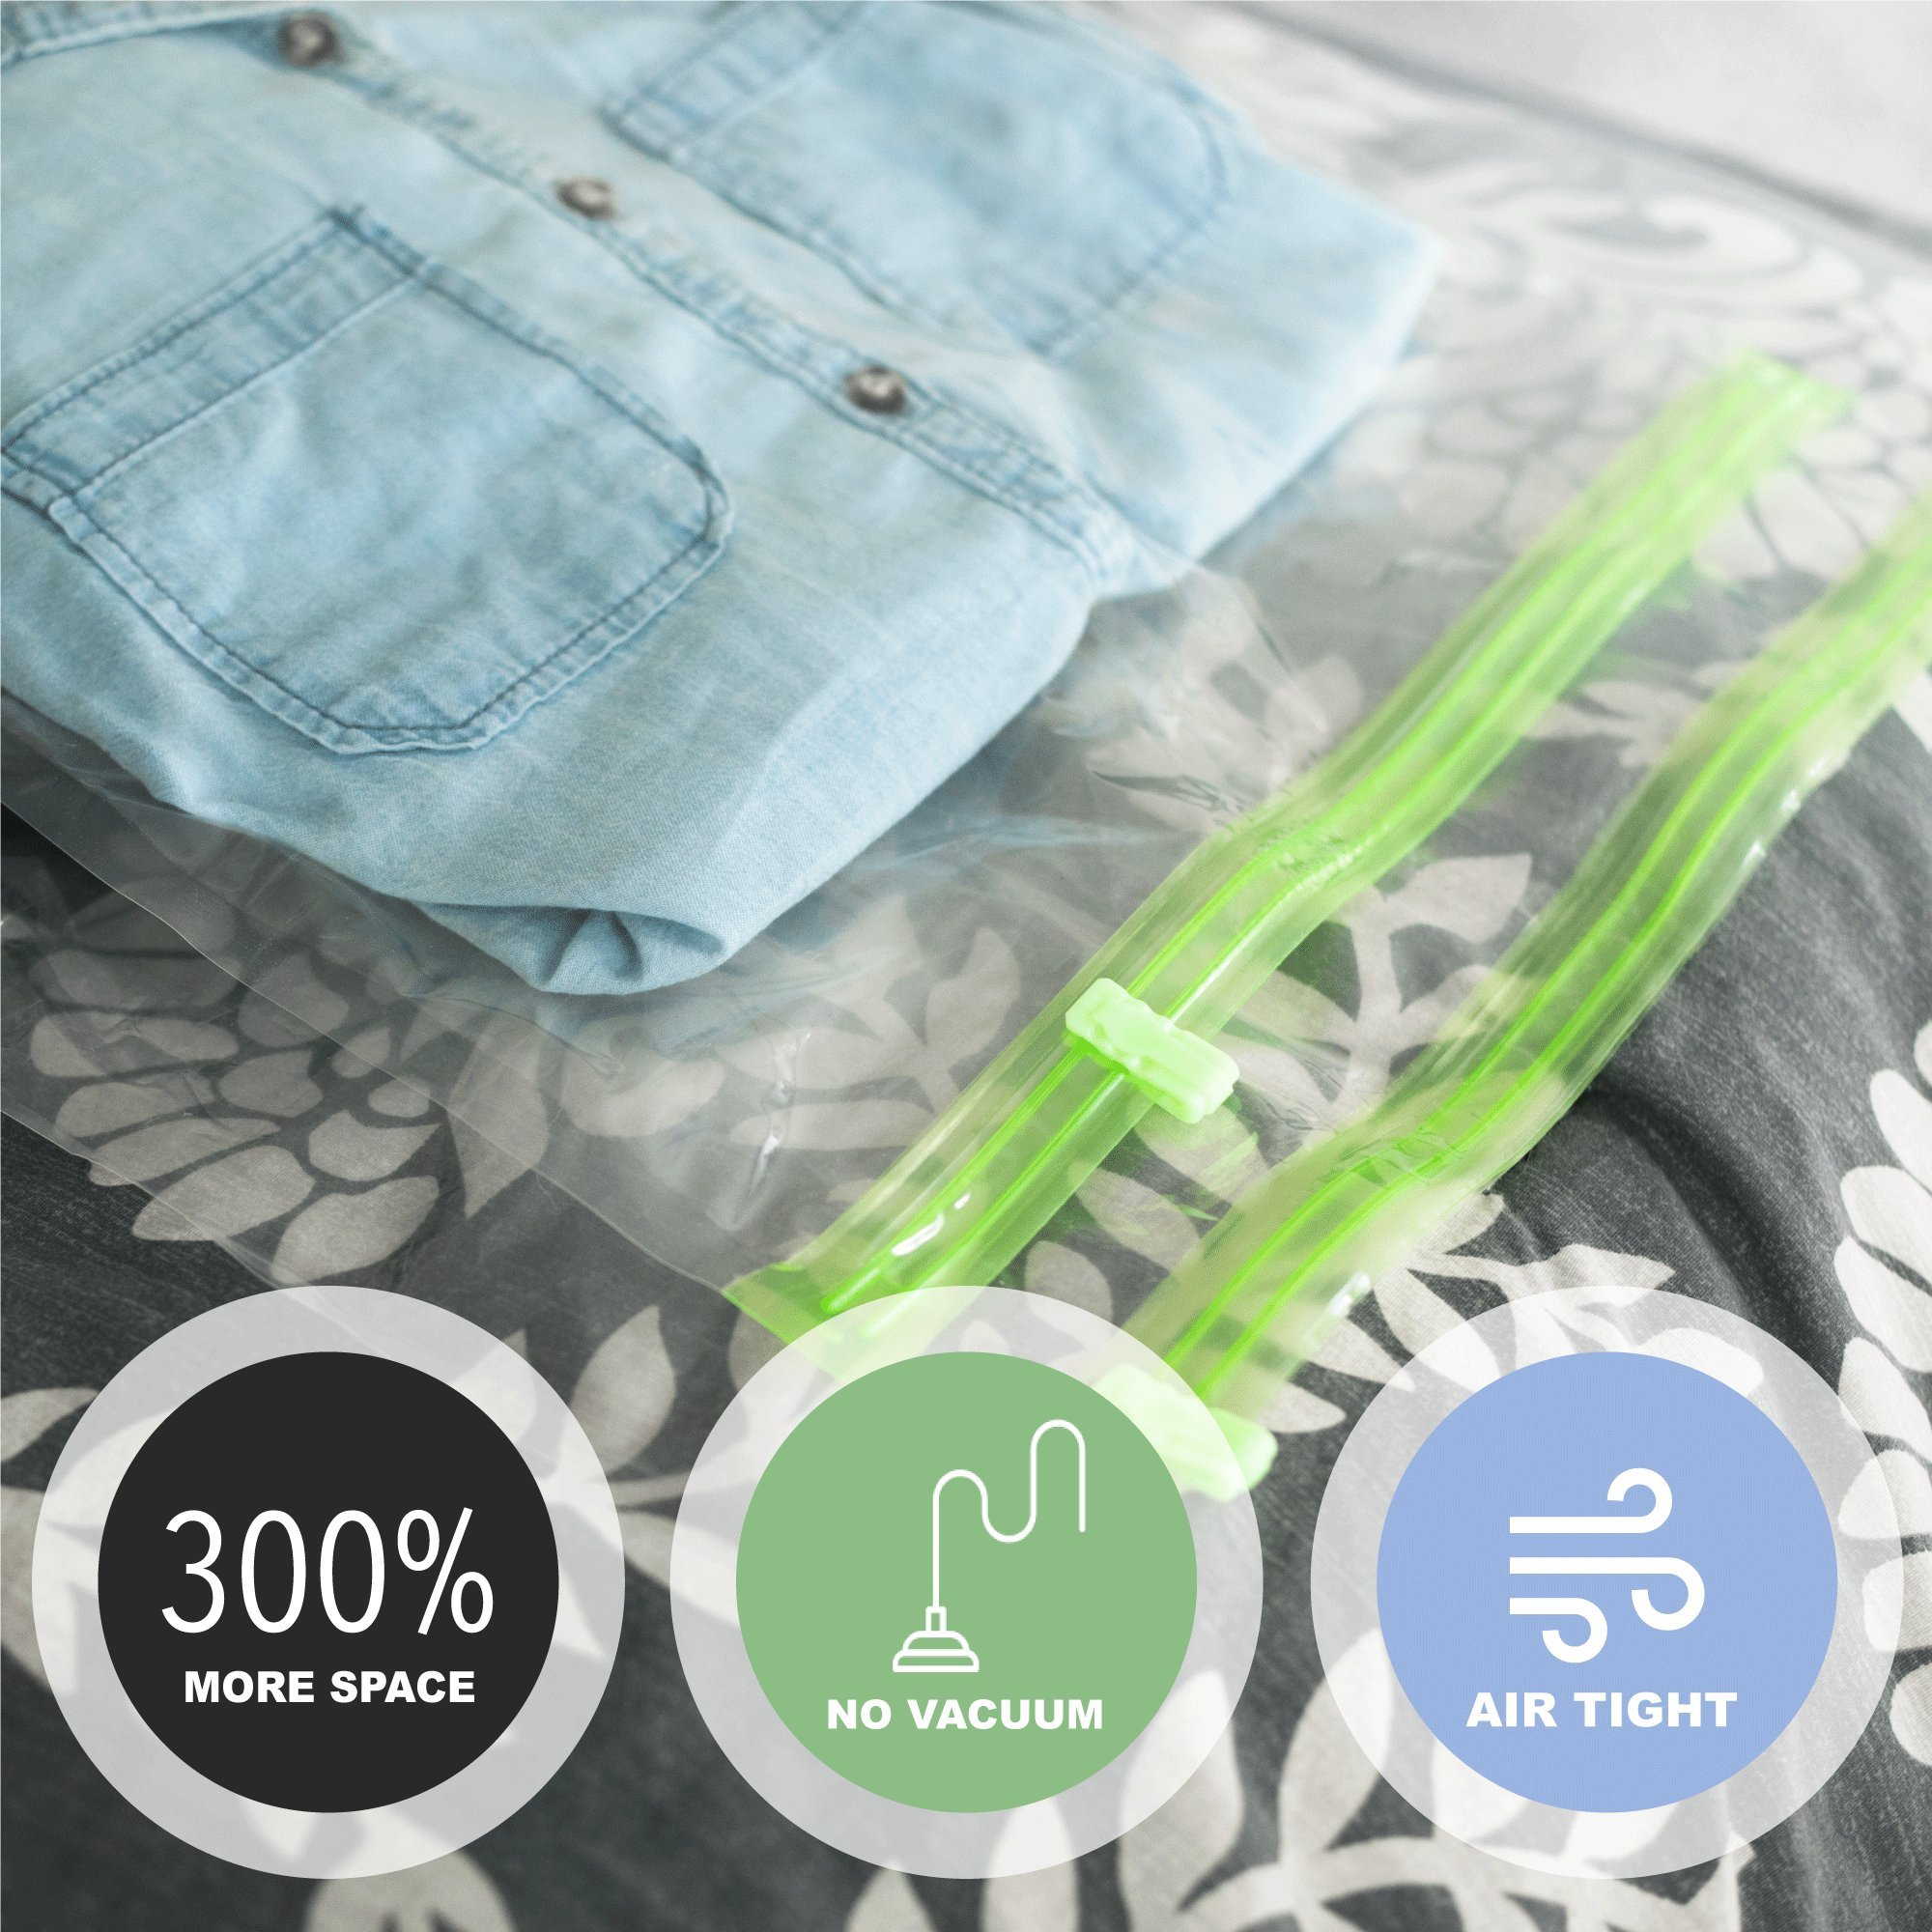 Acrodo Space Saver Packing Bags for Travel - 10-pack Rolling Compression Bags for Clothing by Acrodo (Image #6)